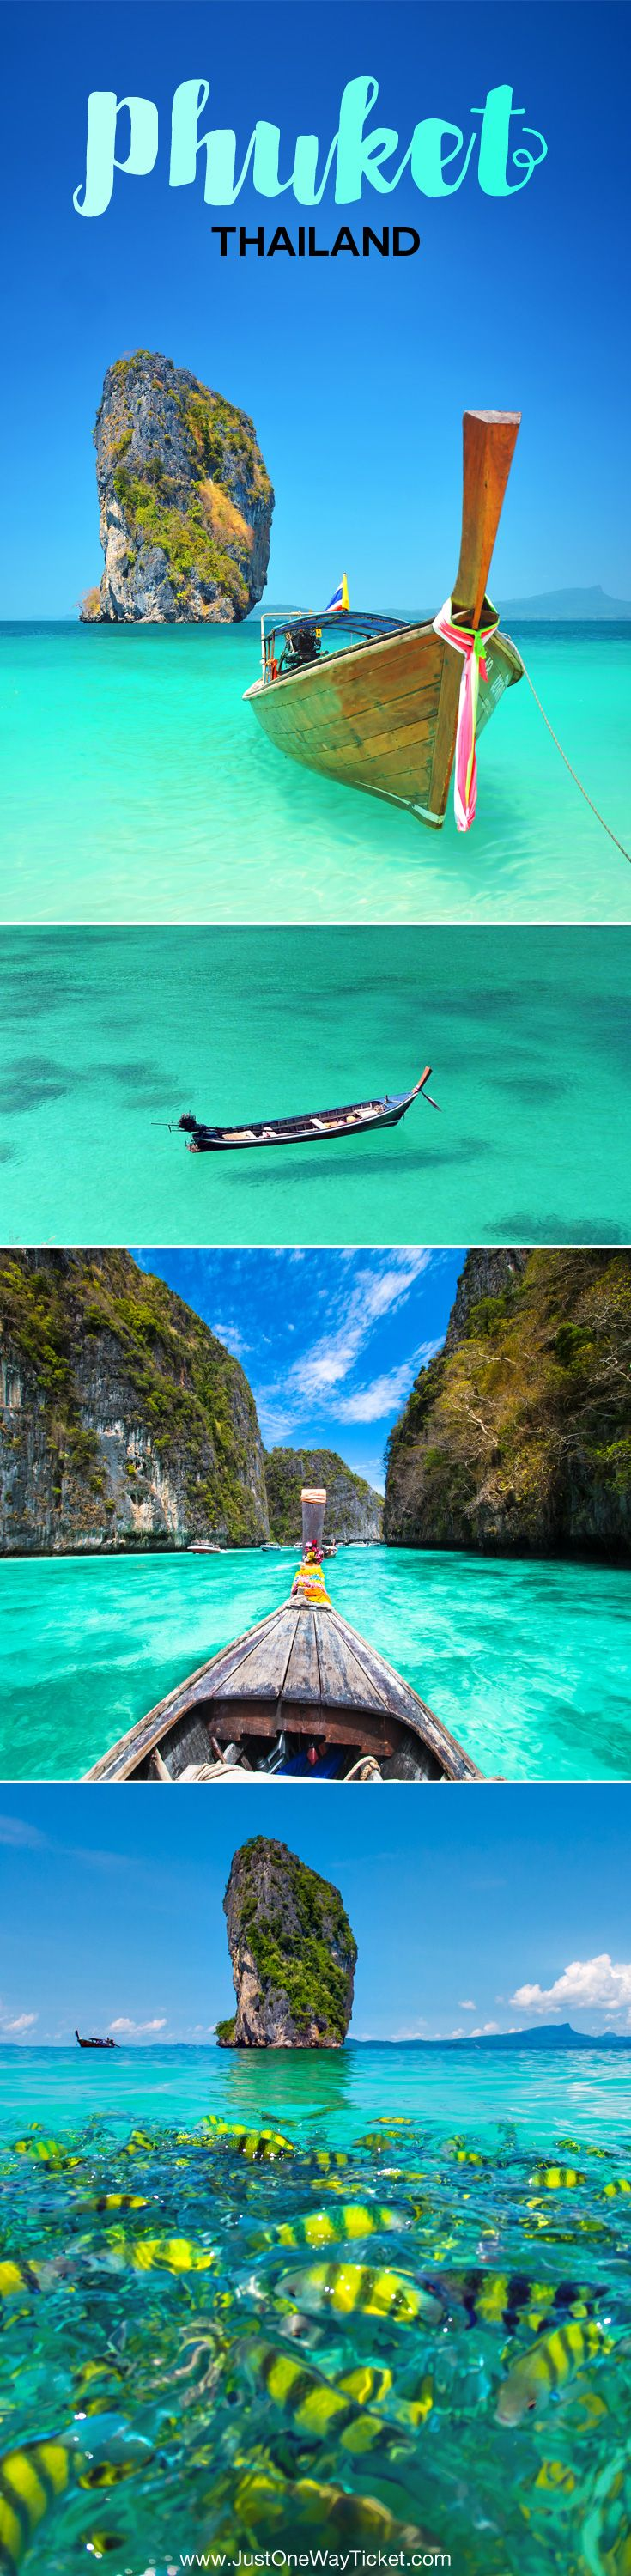 Ultimate Guide To Phuket: Things To Do And Places To Stay